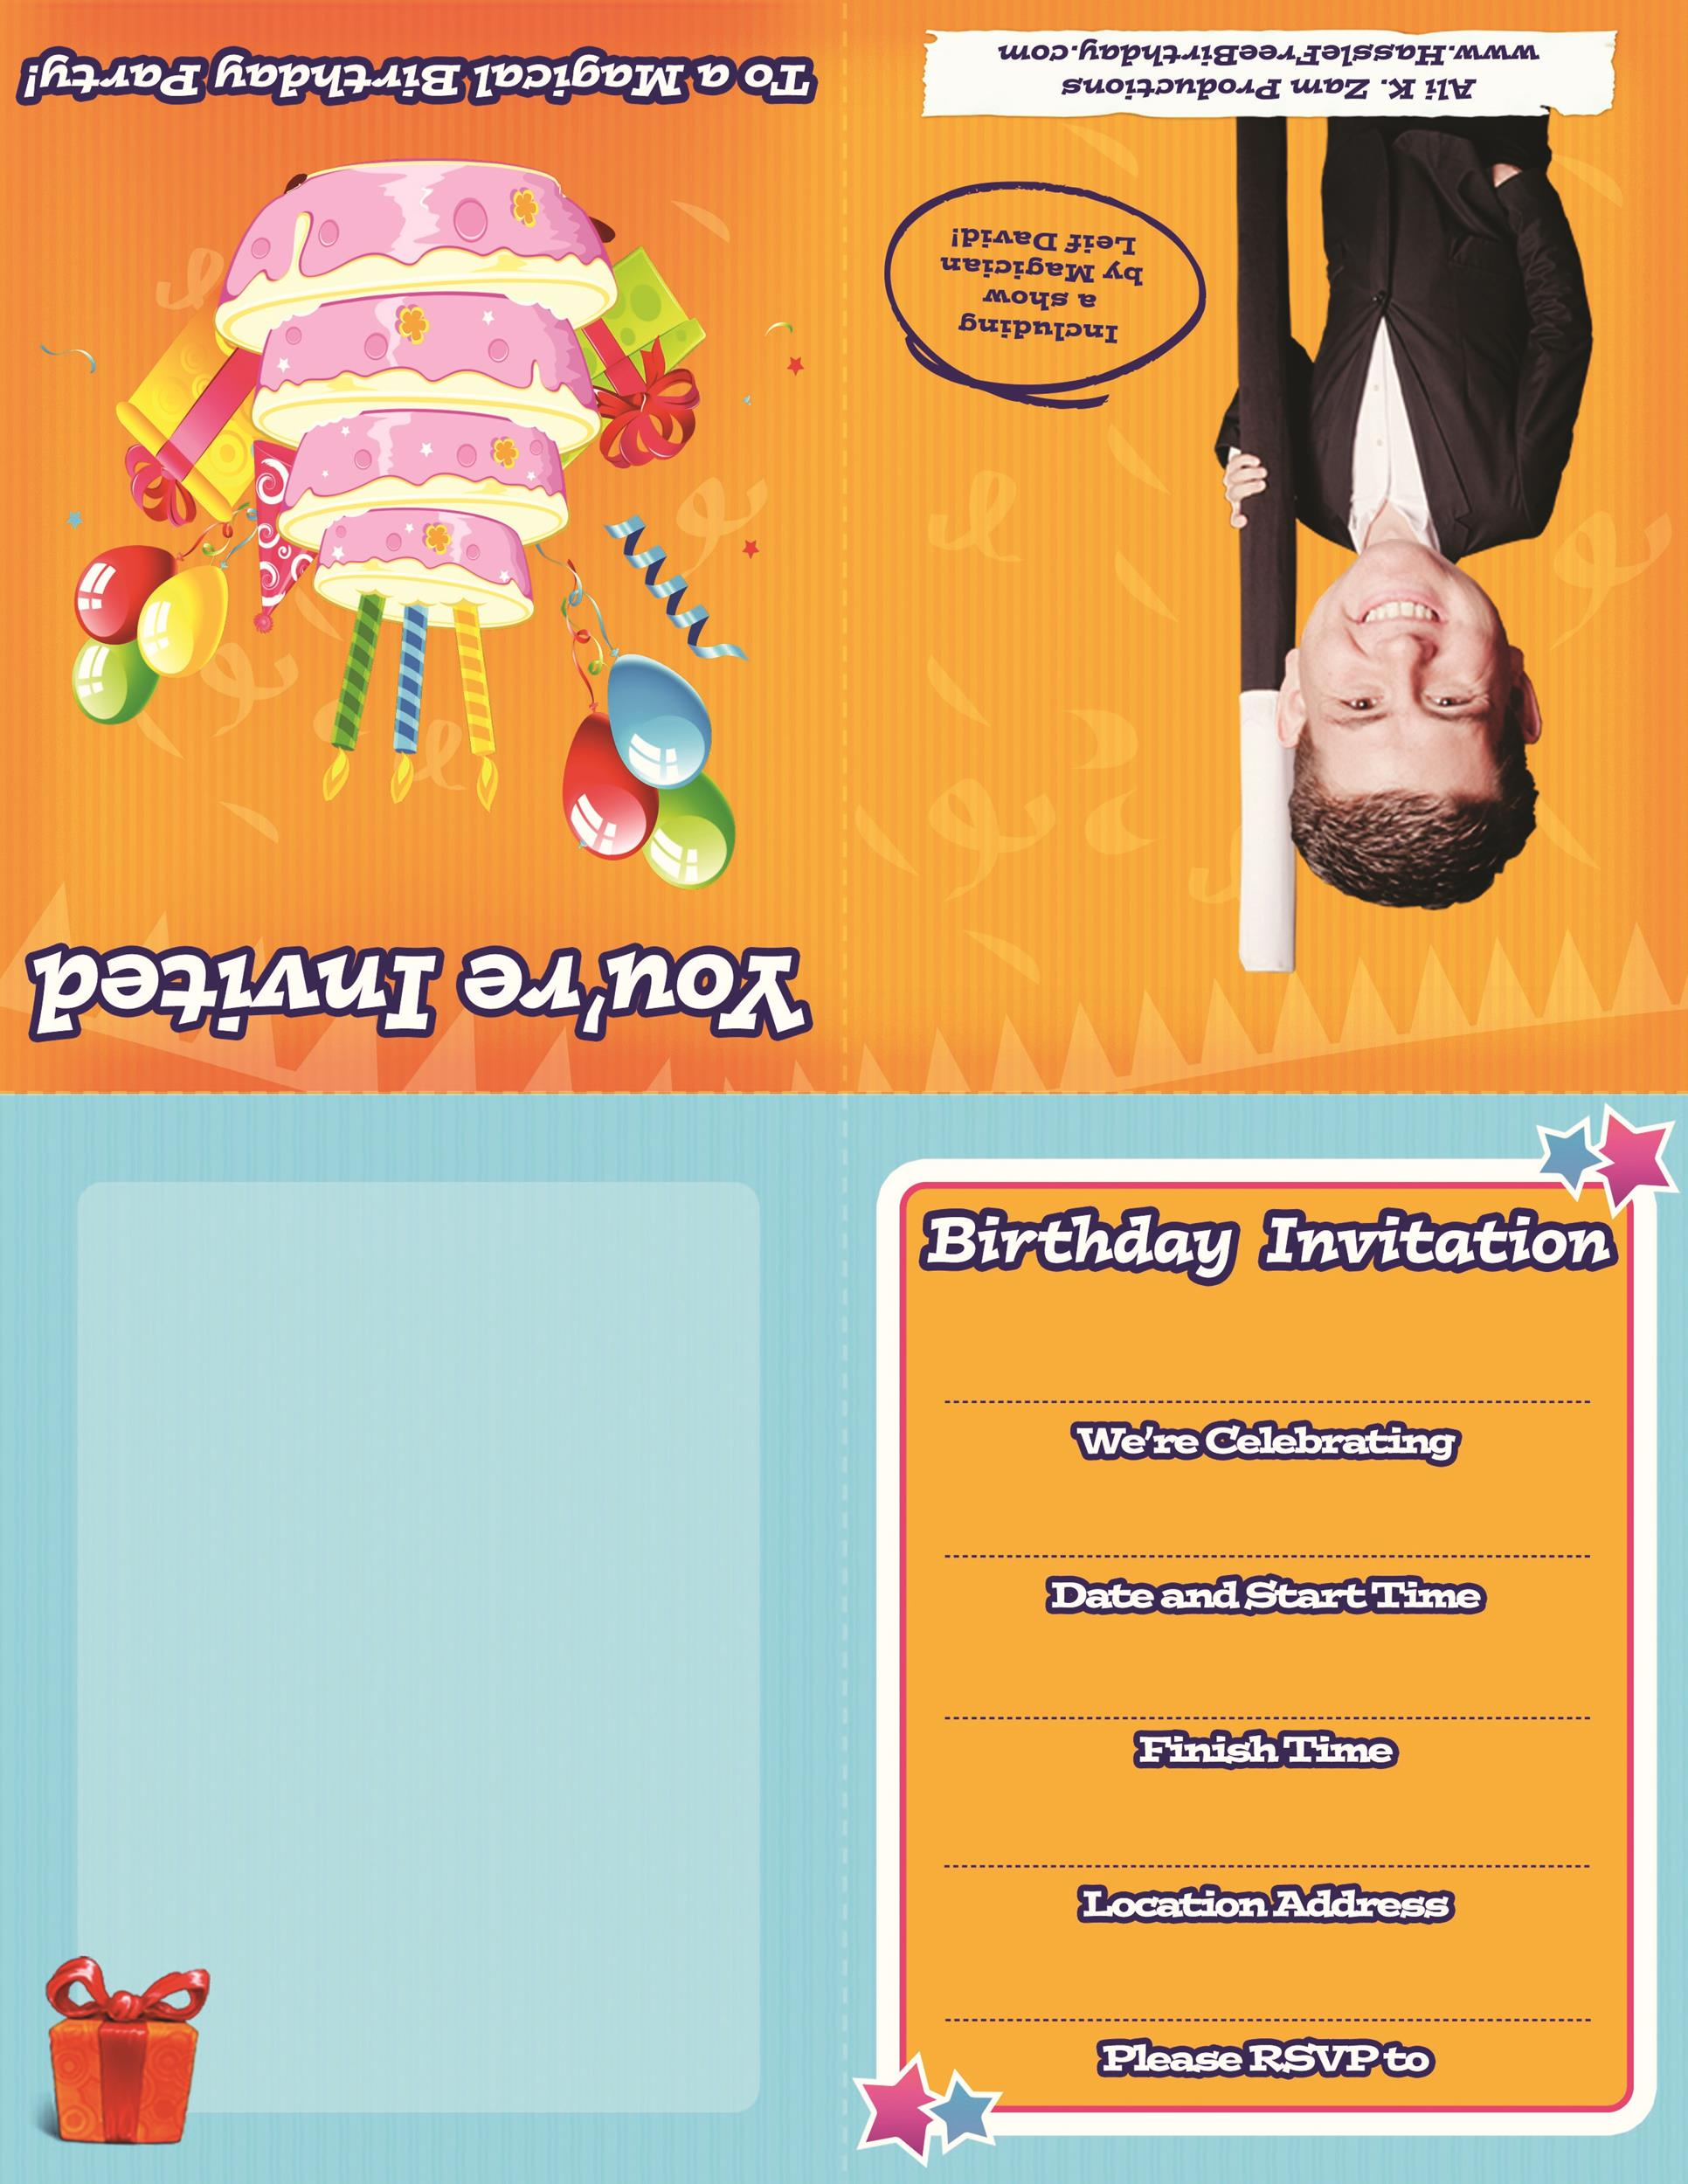 Free Birthday Invitation Template 16